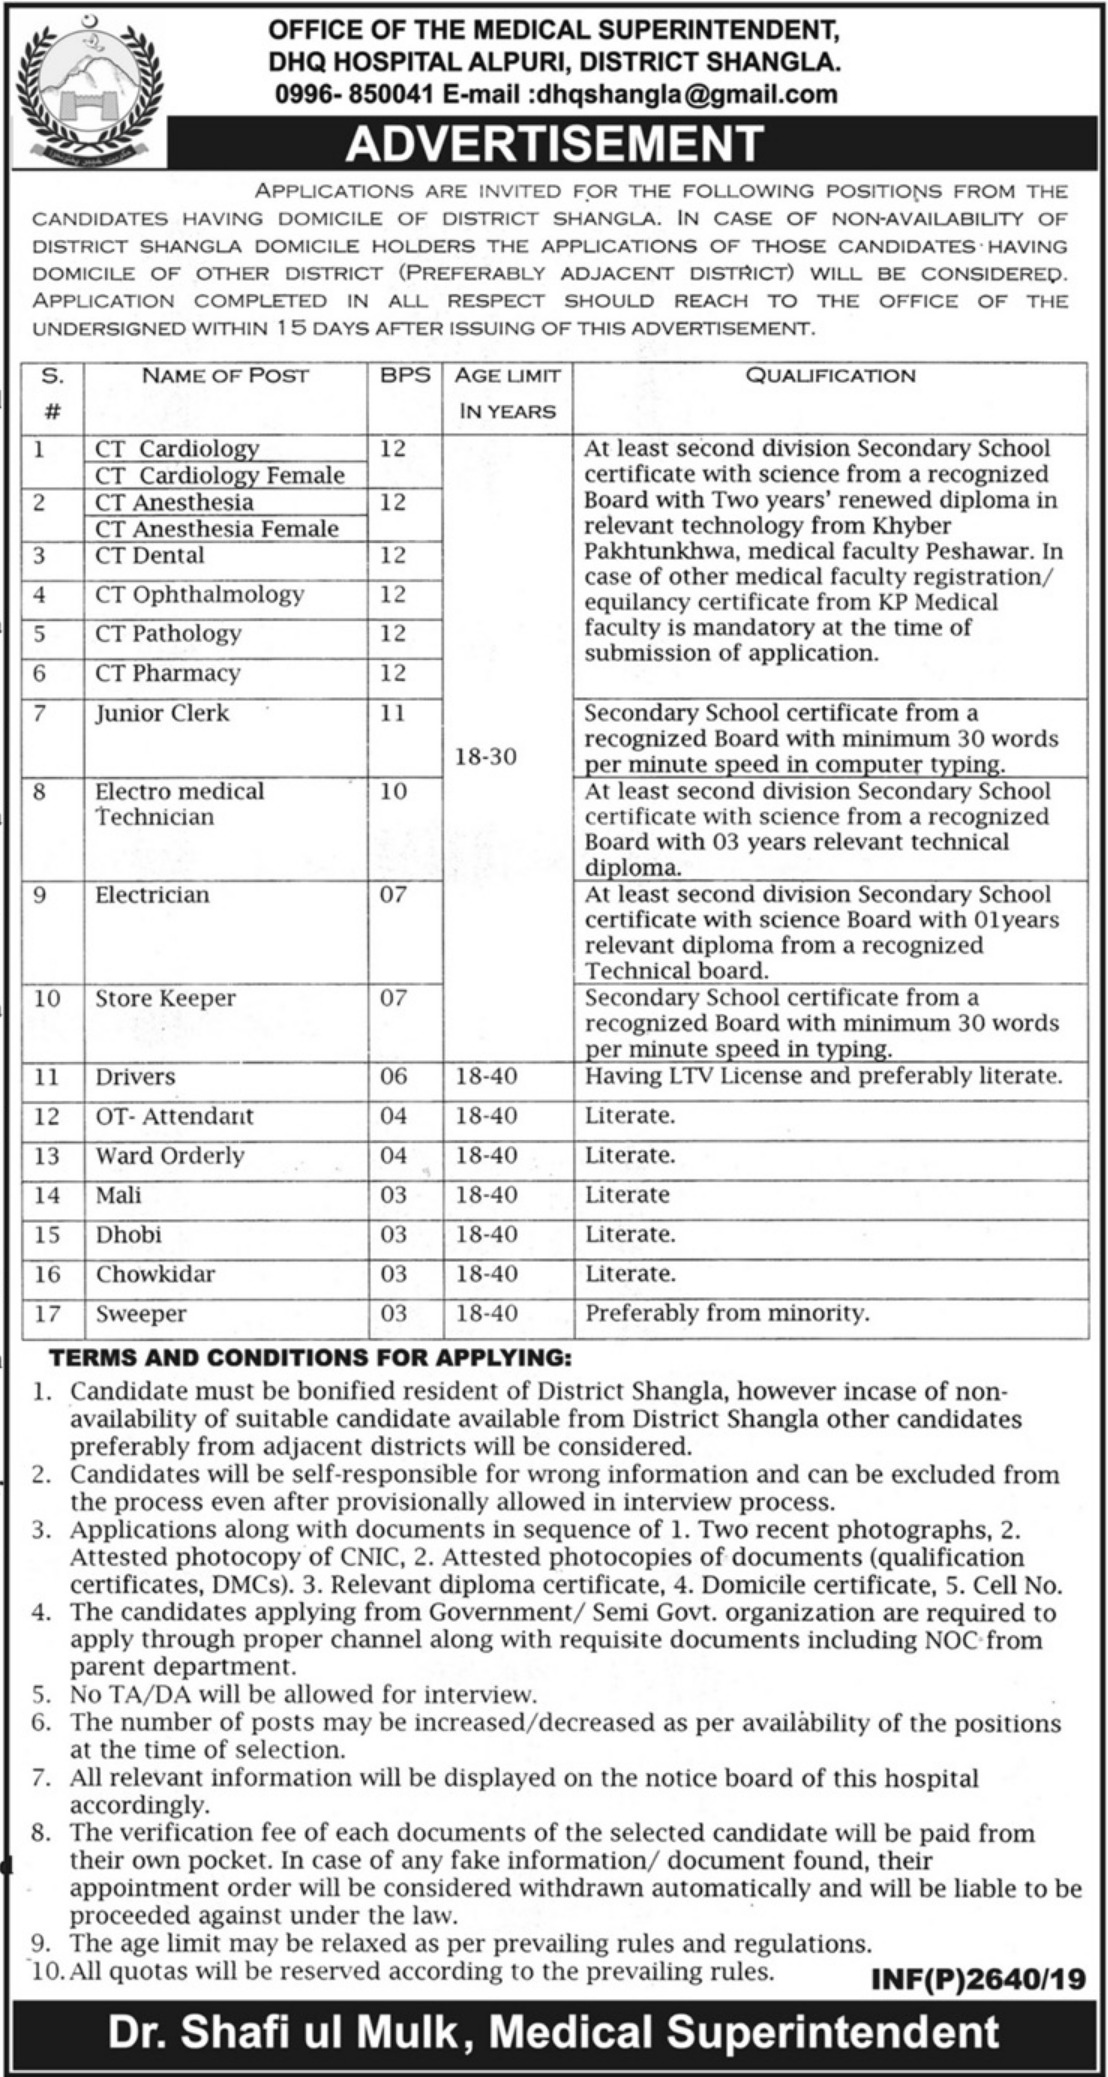 DHQ Hospital Alpuri Shangla Jobs 2019 Government of Khyber Pakhtunkhwa